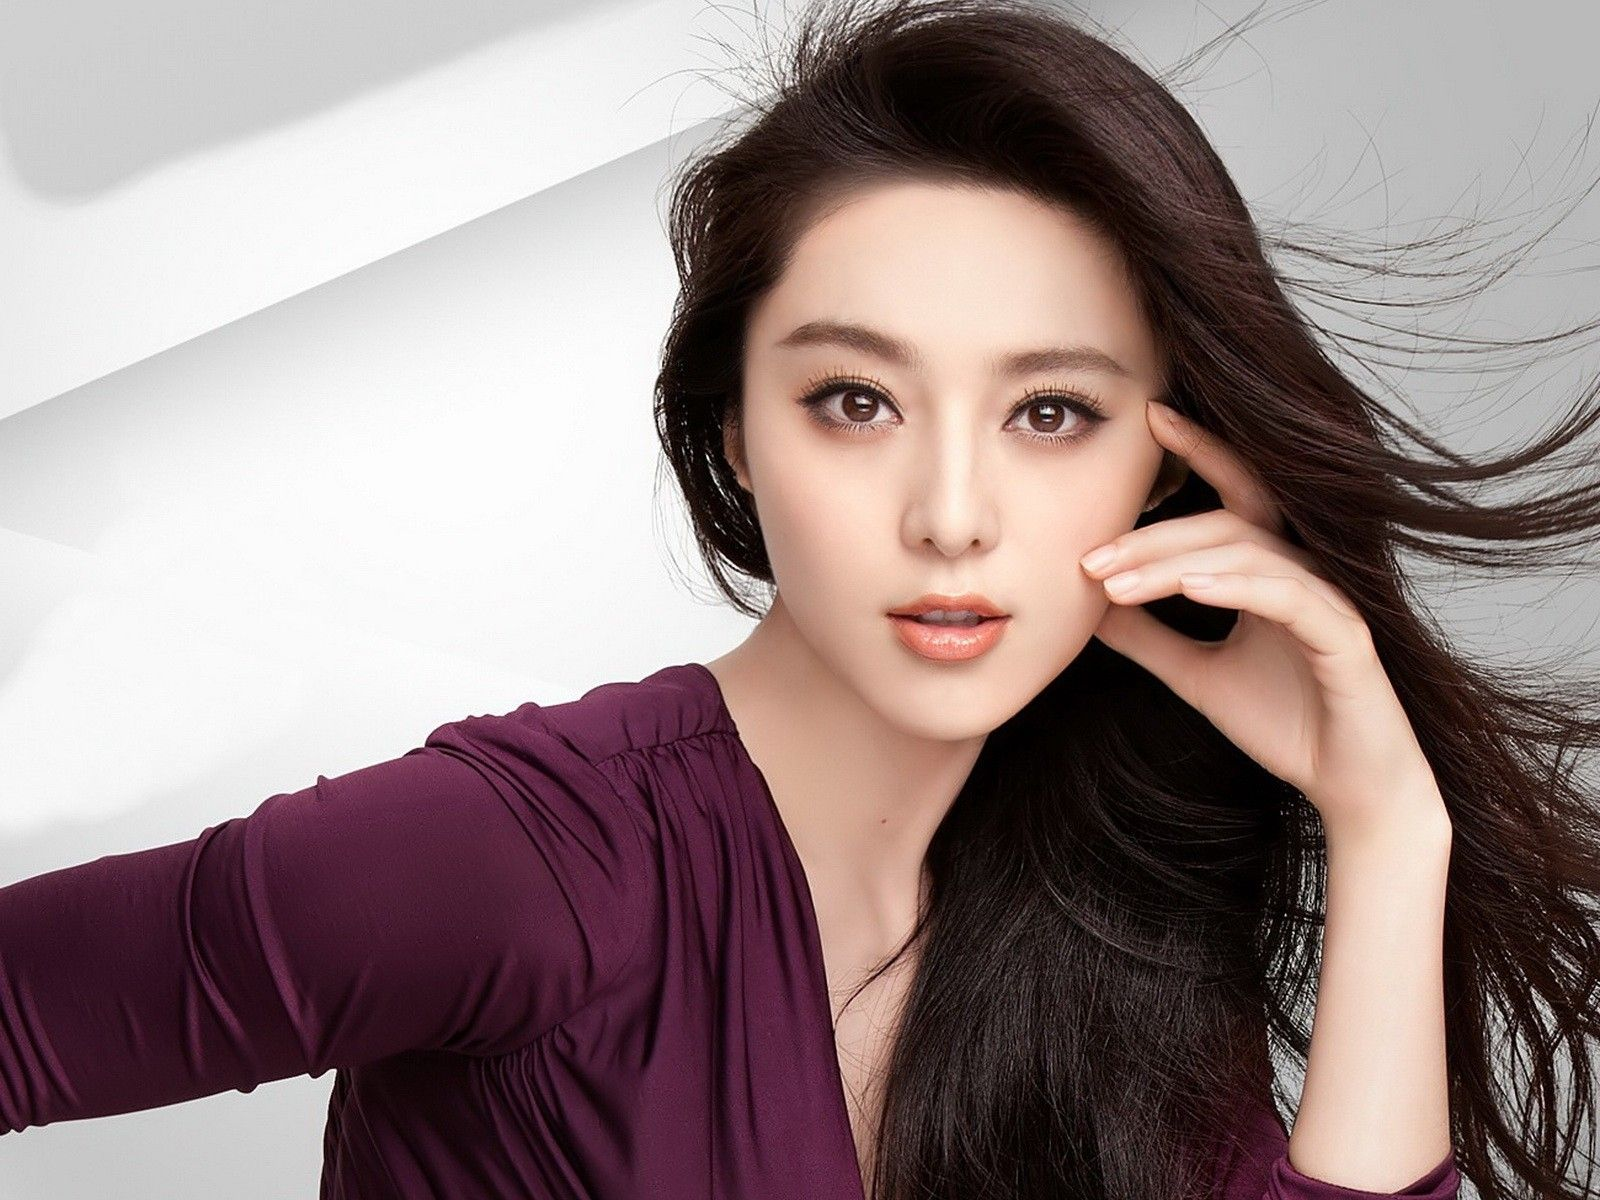 Hd wallpaper ladies - Fan Bingbing Hd Wallpaper